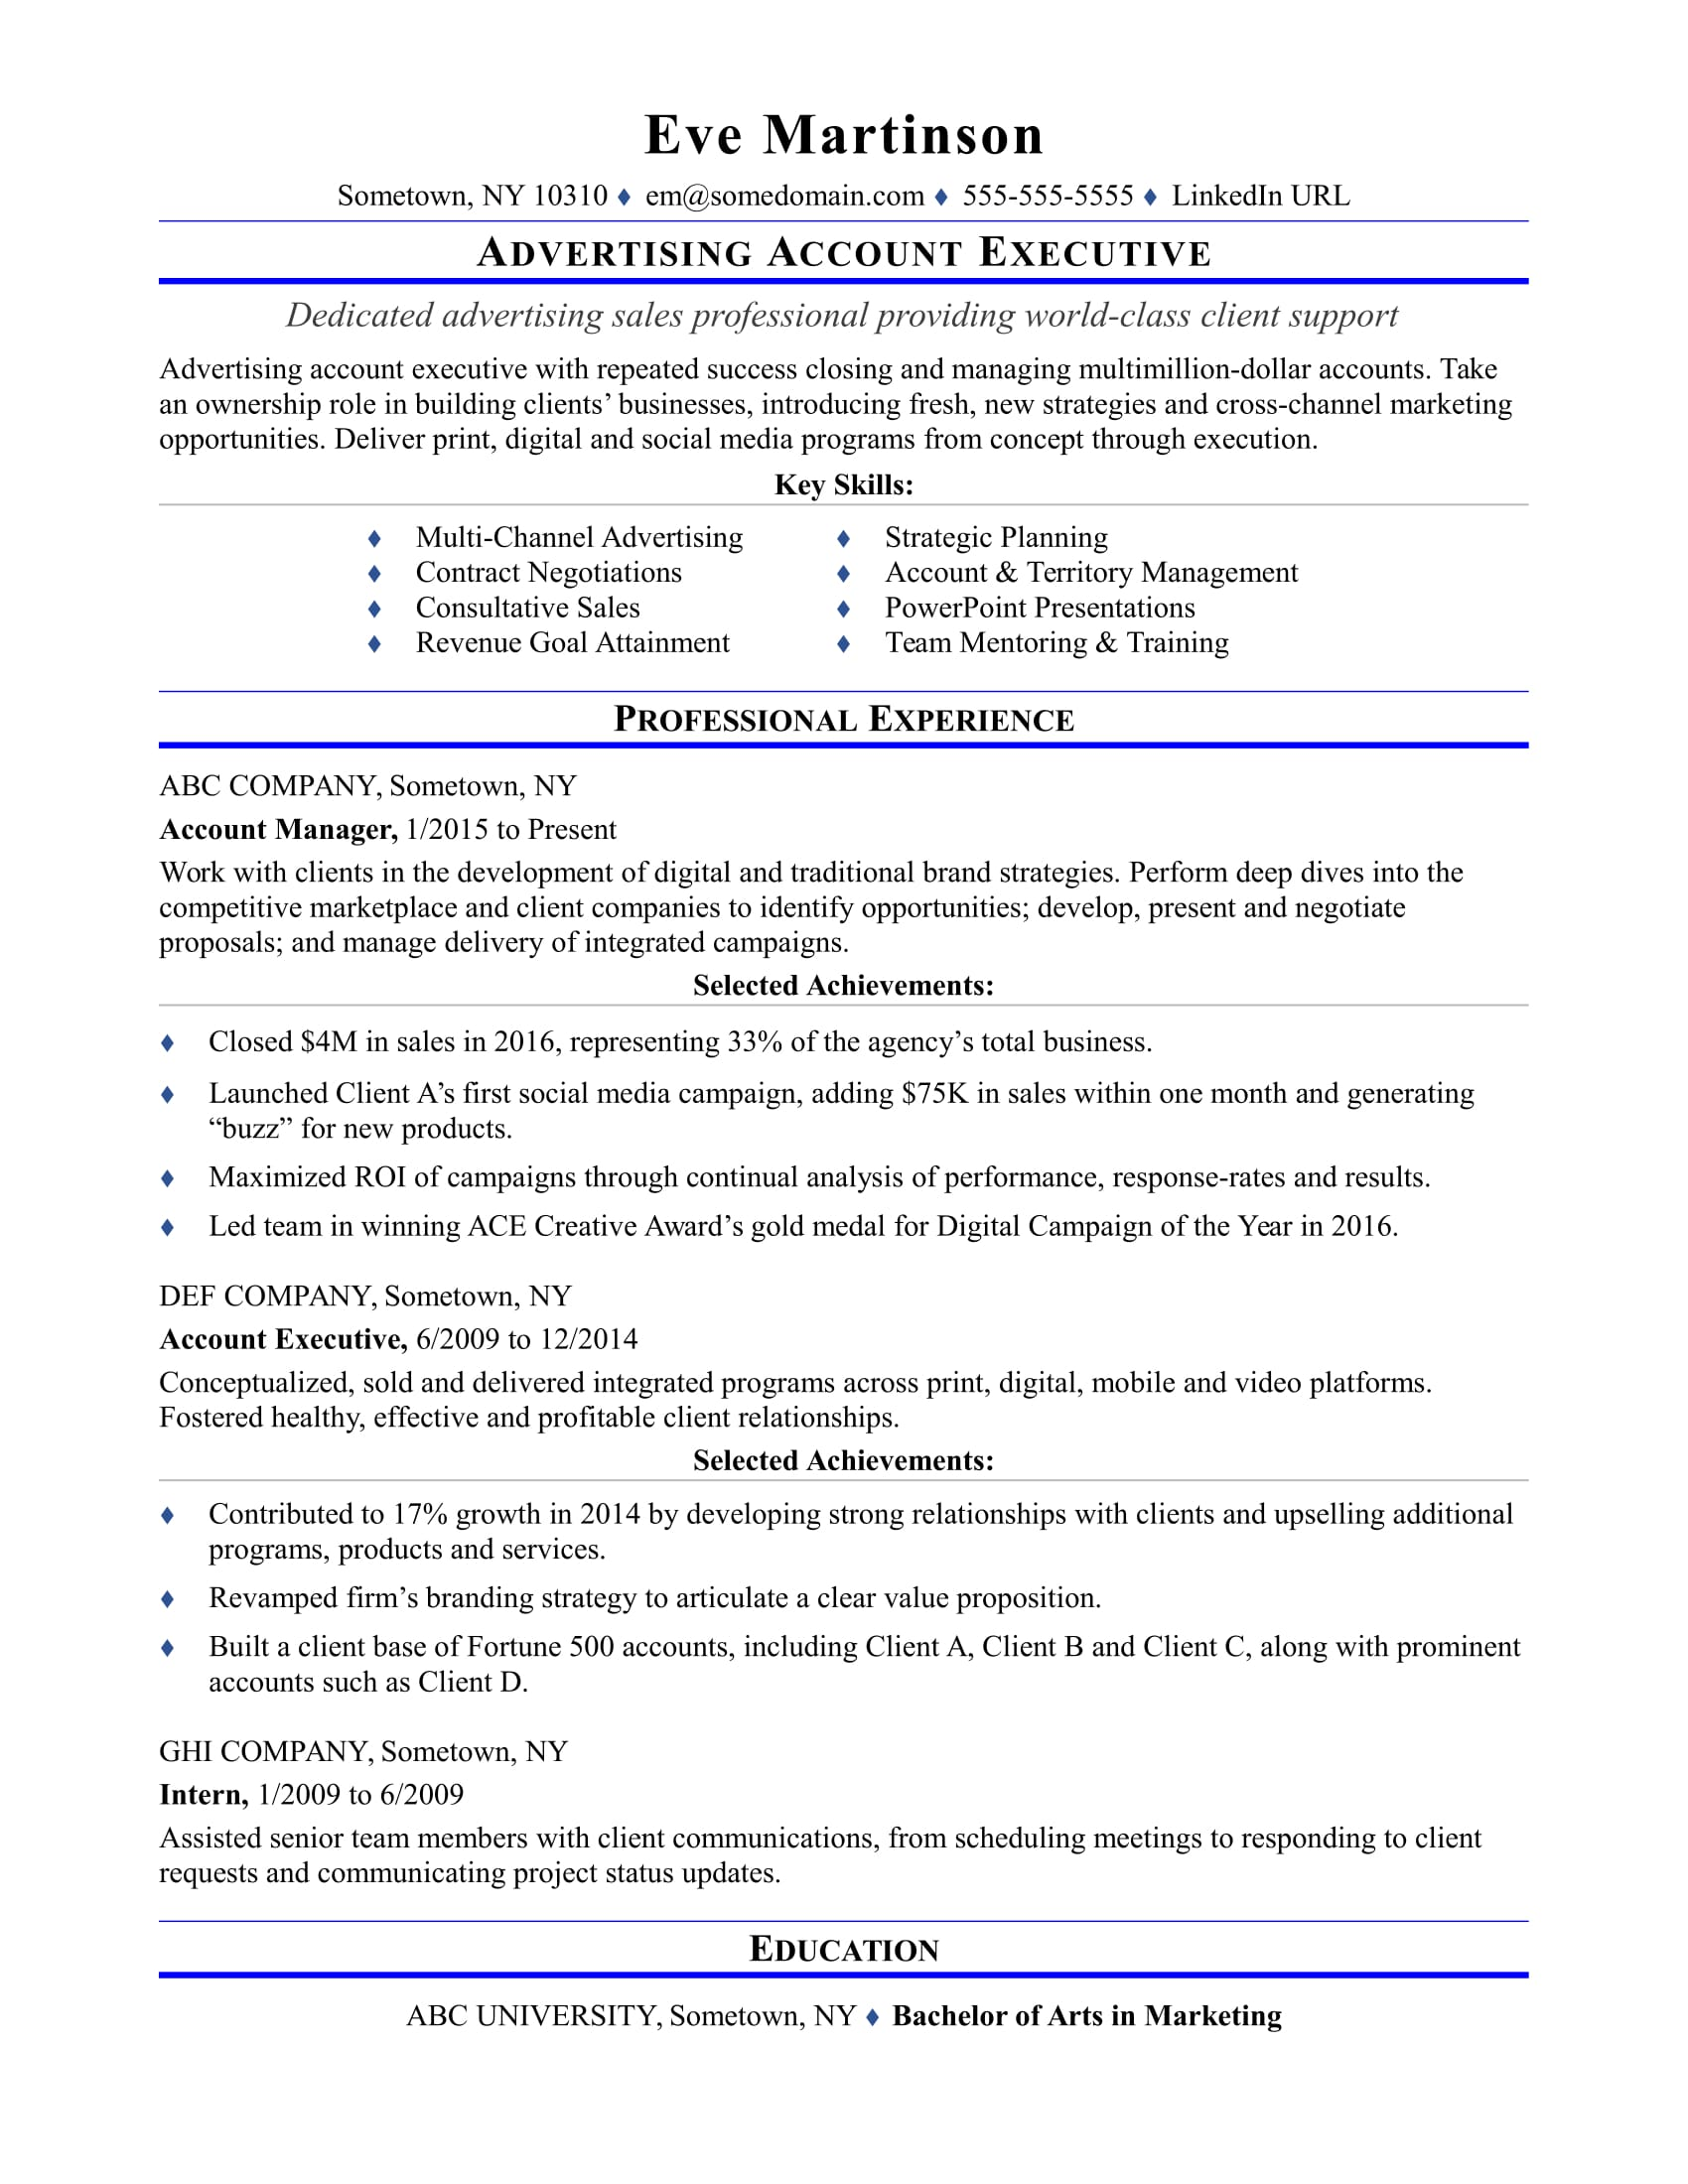 Sample resume for an advertising account executive | Monster.com